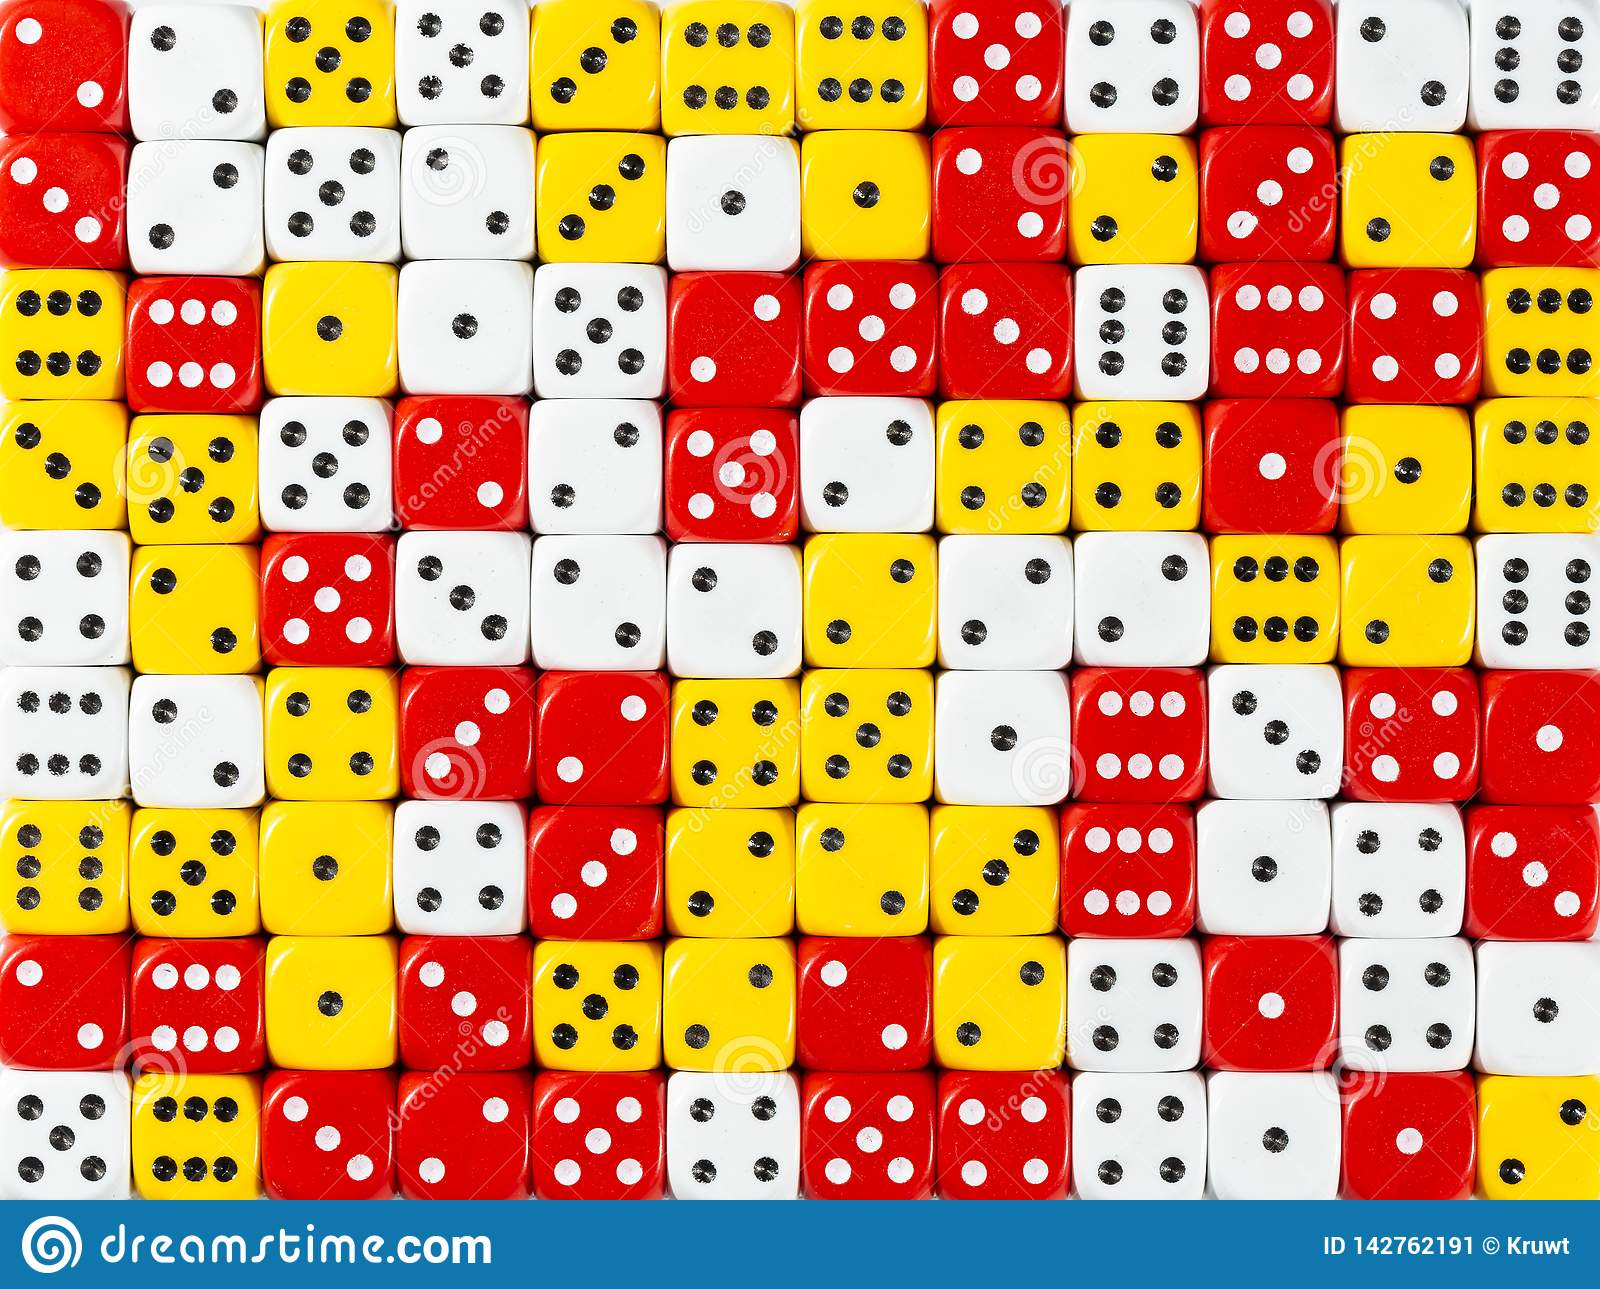 Background pattern of random ordered white, red and yellow dices